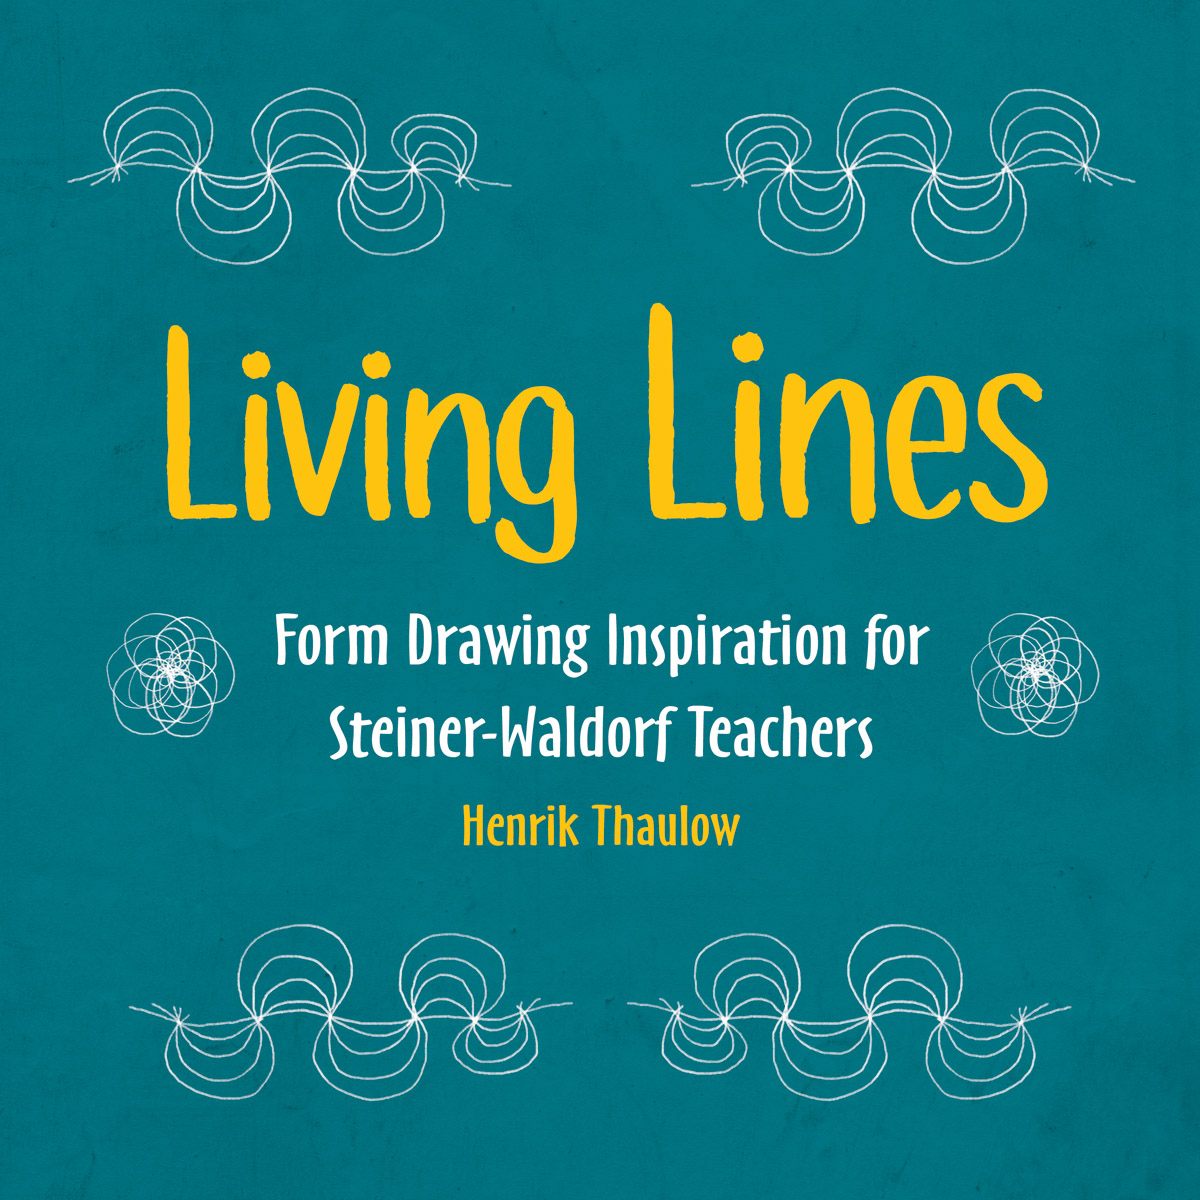 Image for <B>Living Lines </B><I> Form Drawing Inspiration for Steiner Waldorf Teachers <br>for Steiner-Waldorf Teachers</I>